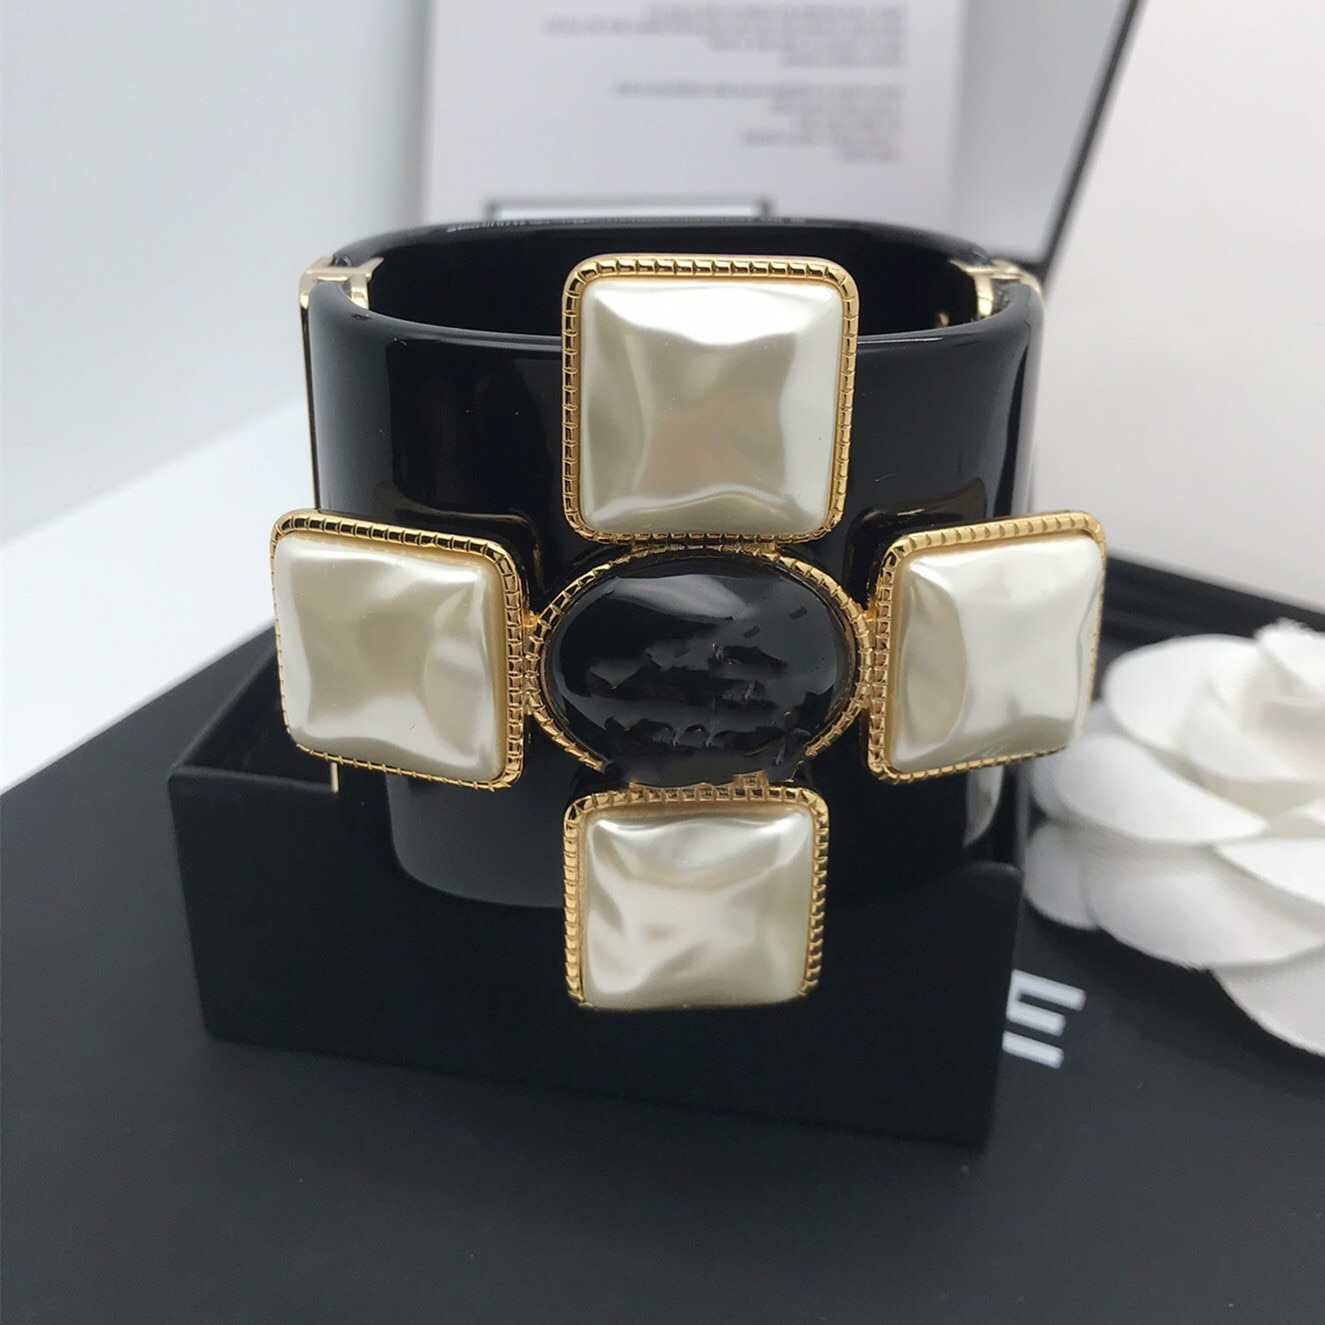 Promo Luxury Designer Brand Stamp Black Resin Alphabet Europe Cuff Gothic Bracelets Bangles Pearl Crystal  for Women Jewelry Gift